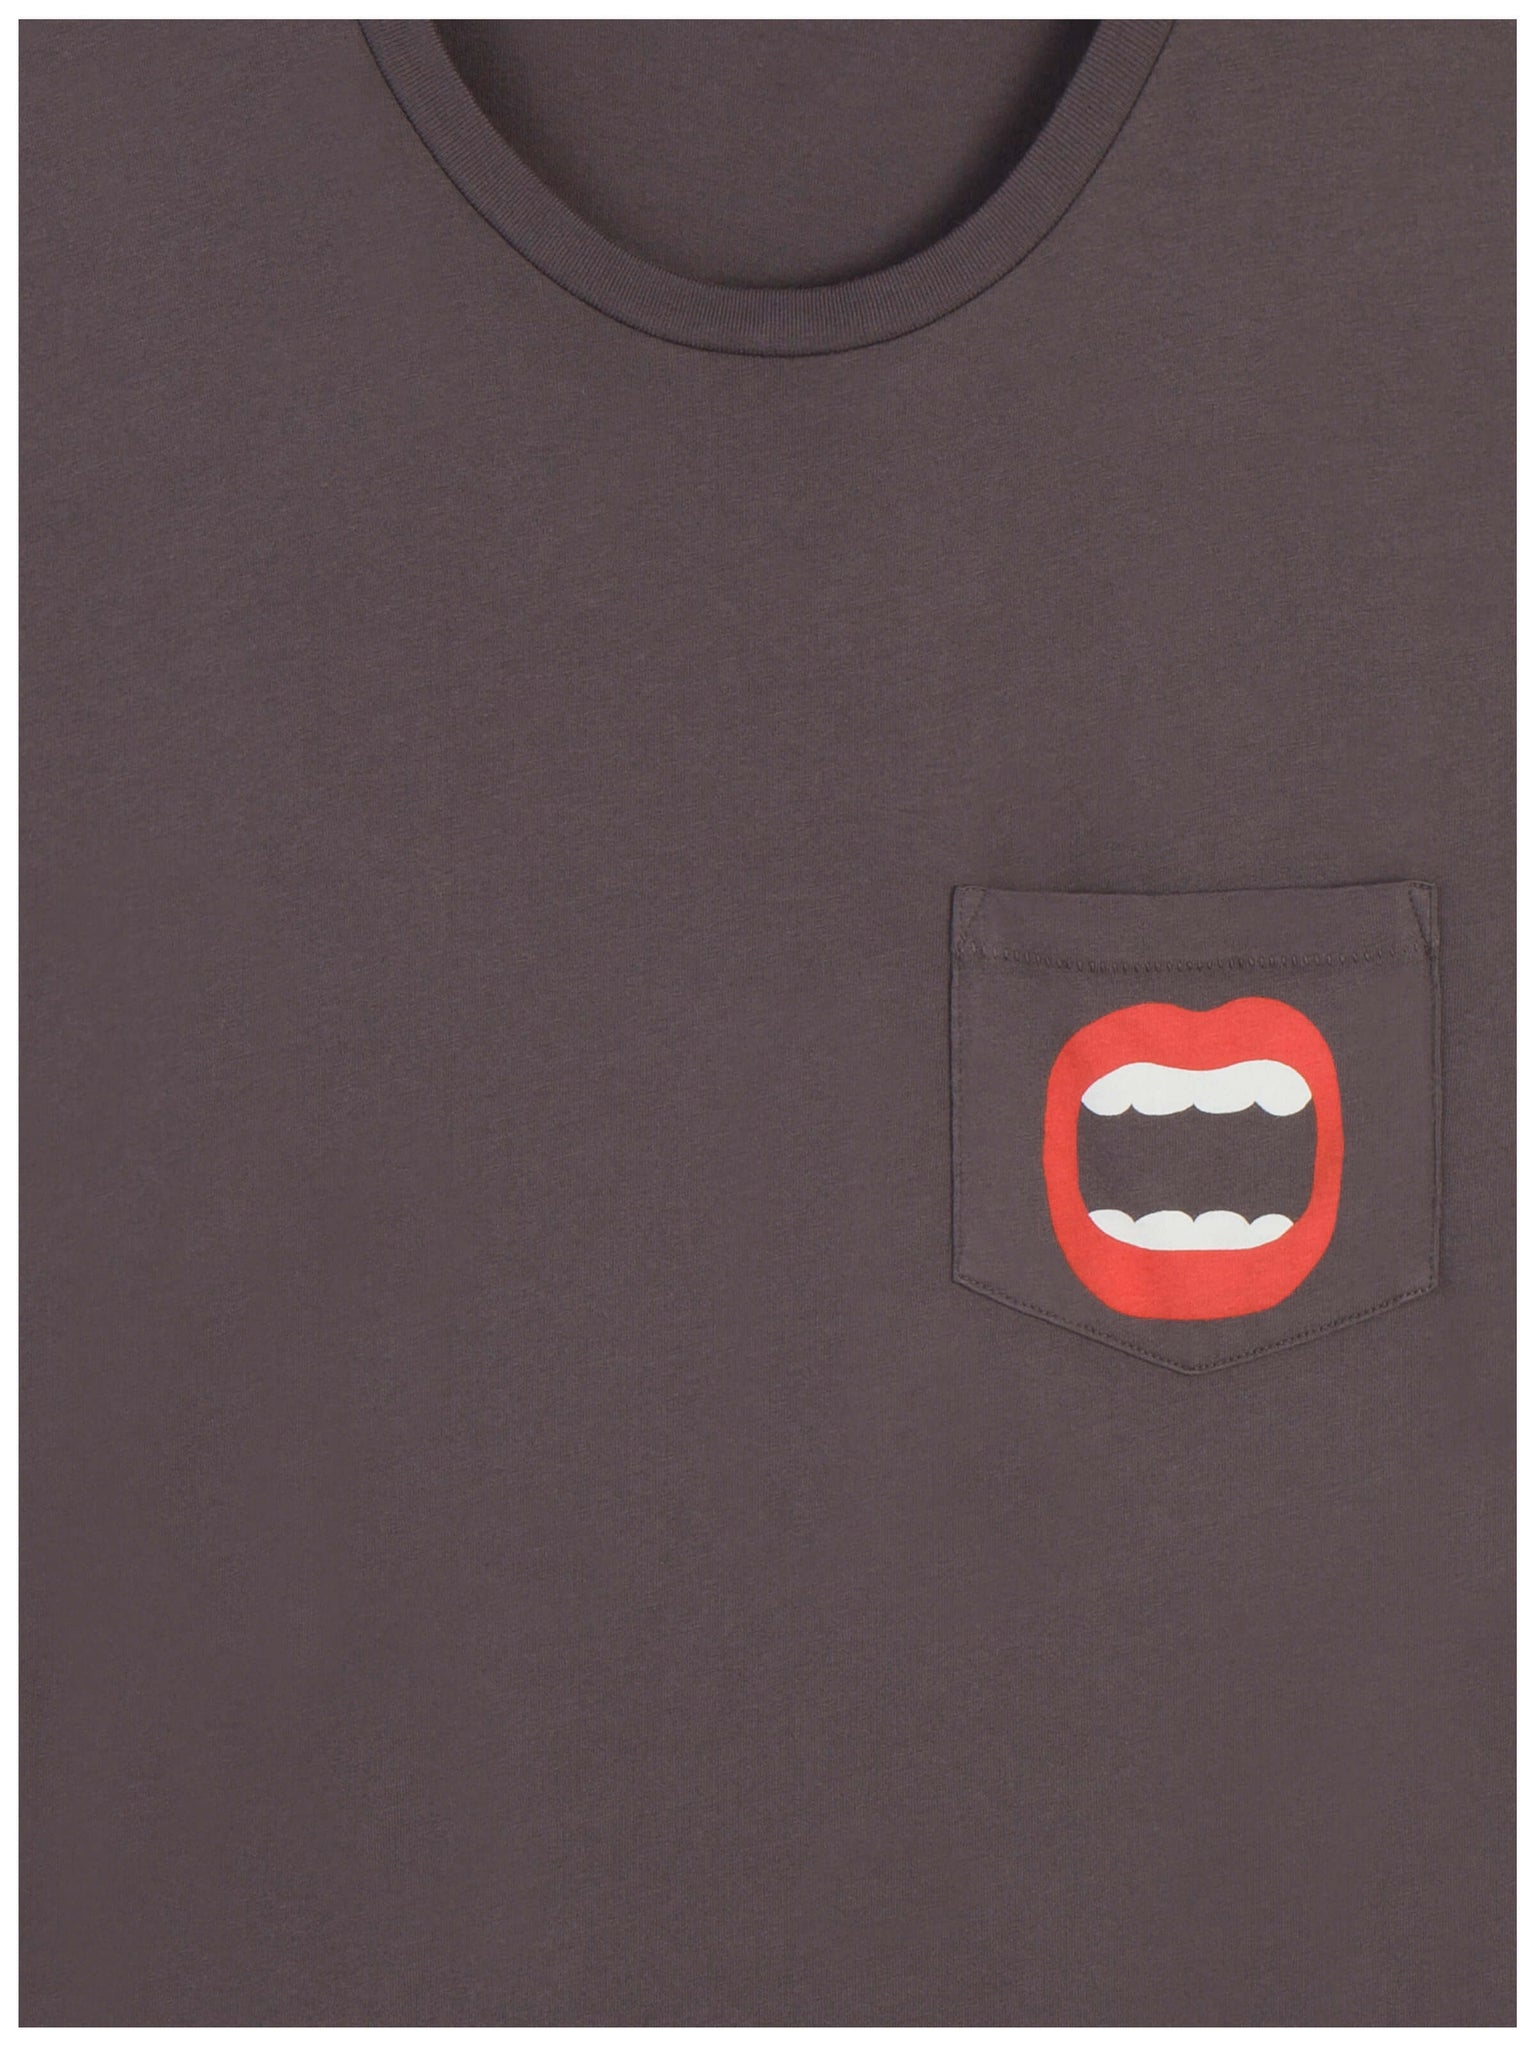 Big Mouth Tee